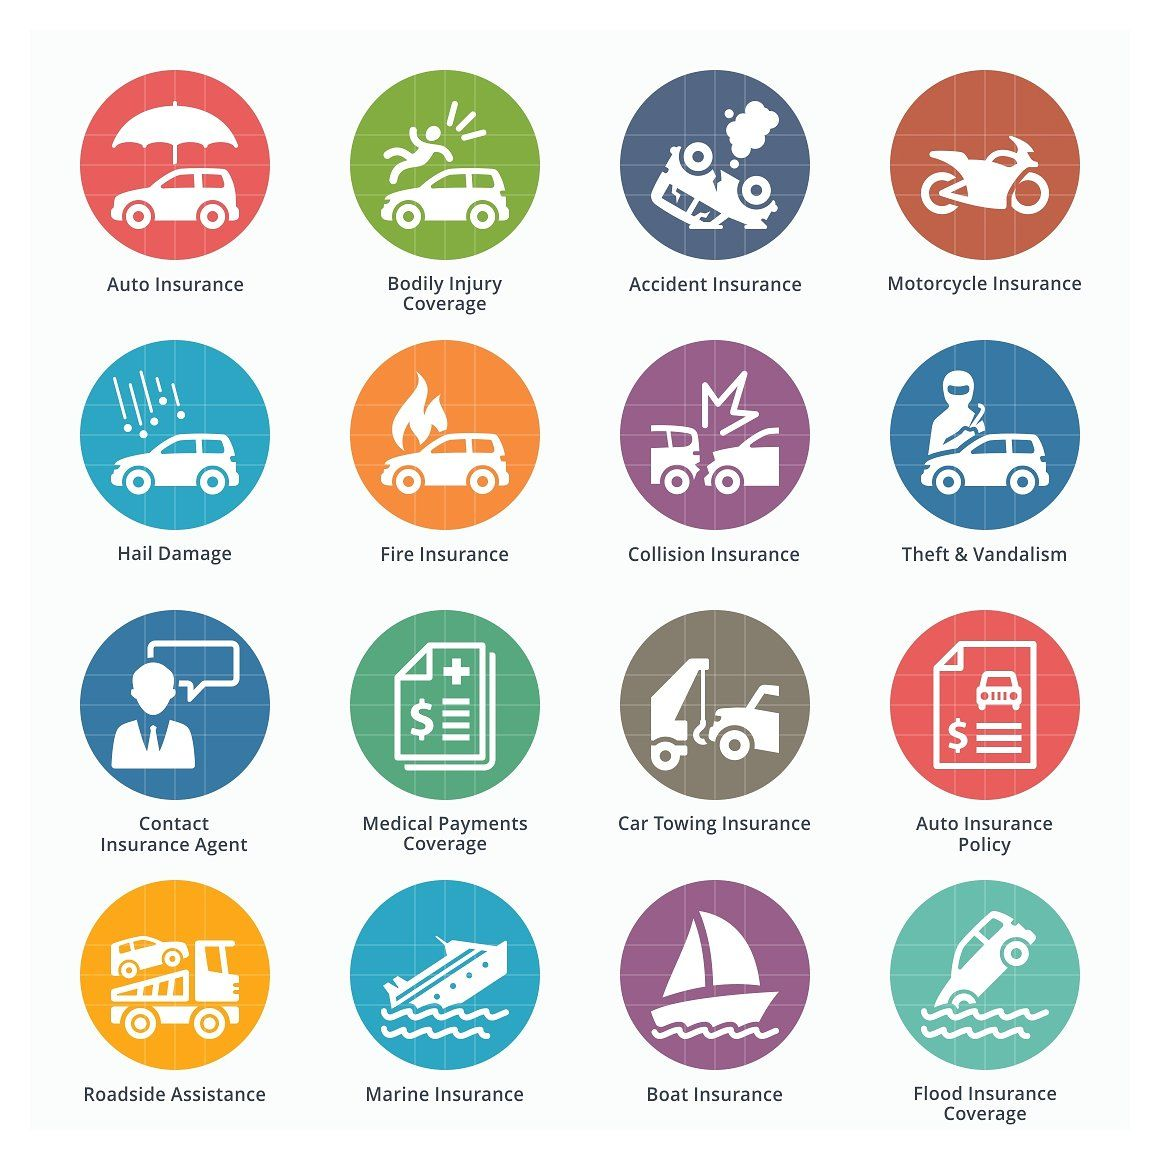 Auto Insurance Icons Colored Car Insurance Boat Insurance Insurance